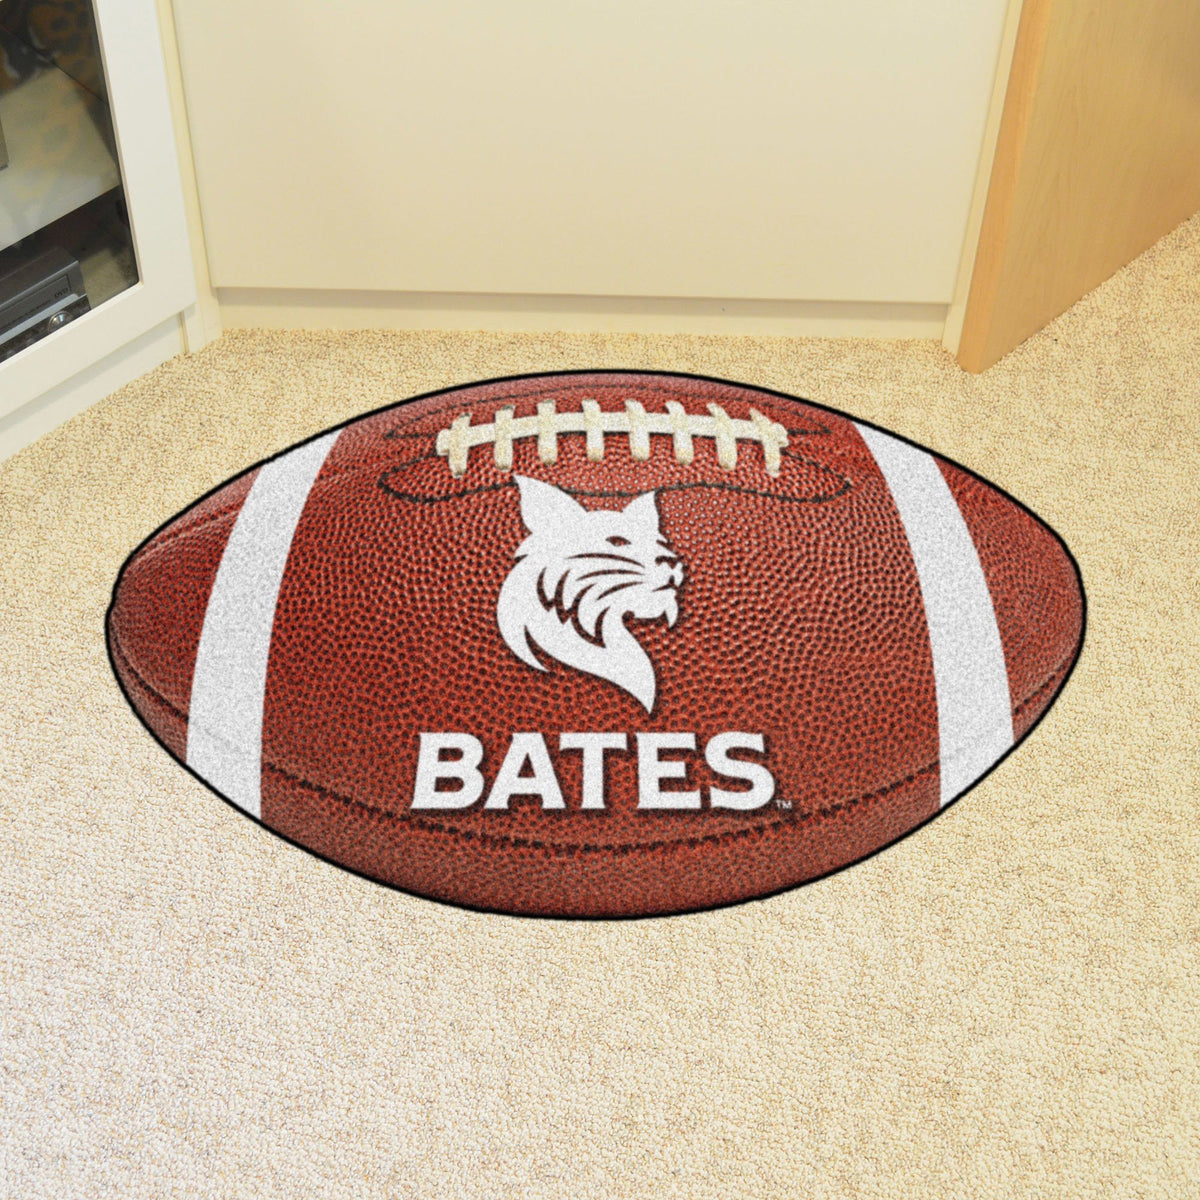 Collegiate - Football Mat: A - K Collegiate Mats, Rectangular Mats, Football Mat, Collegiate, Home Fan Mats Bates College